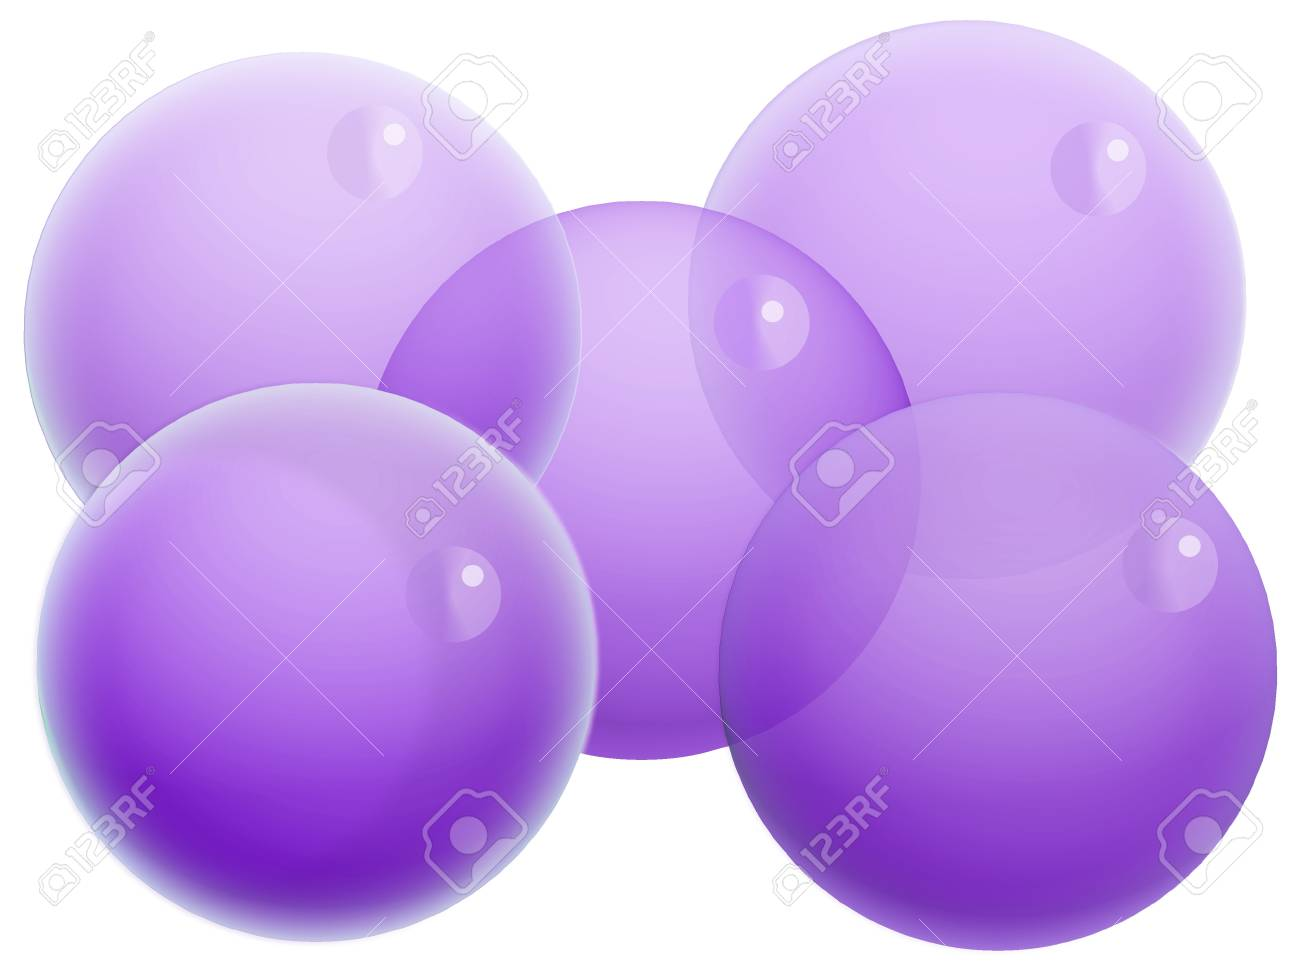 Five violet transparent balls of bubbles isolated on white Stock Photo - 20652415